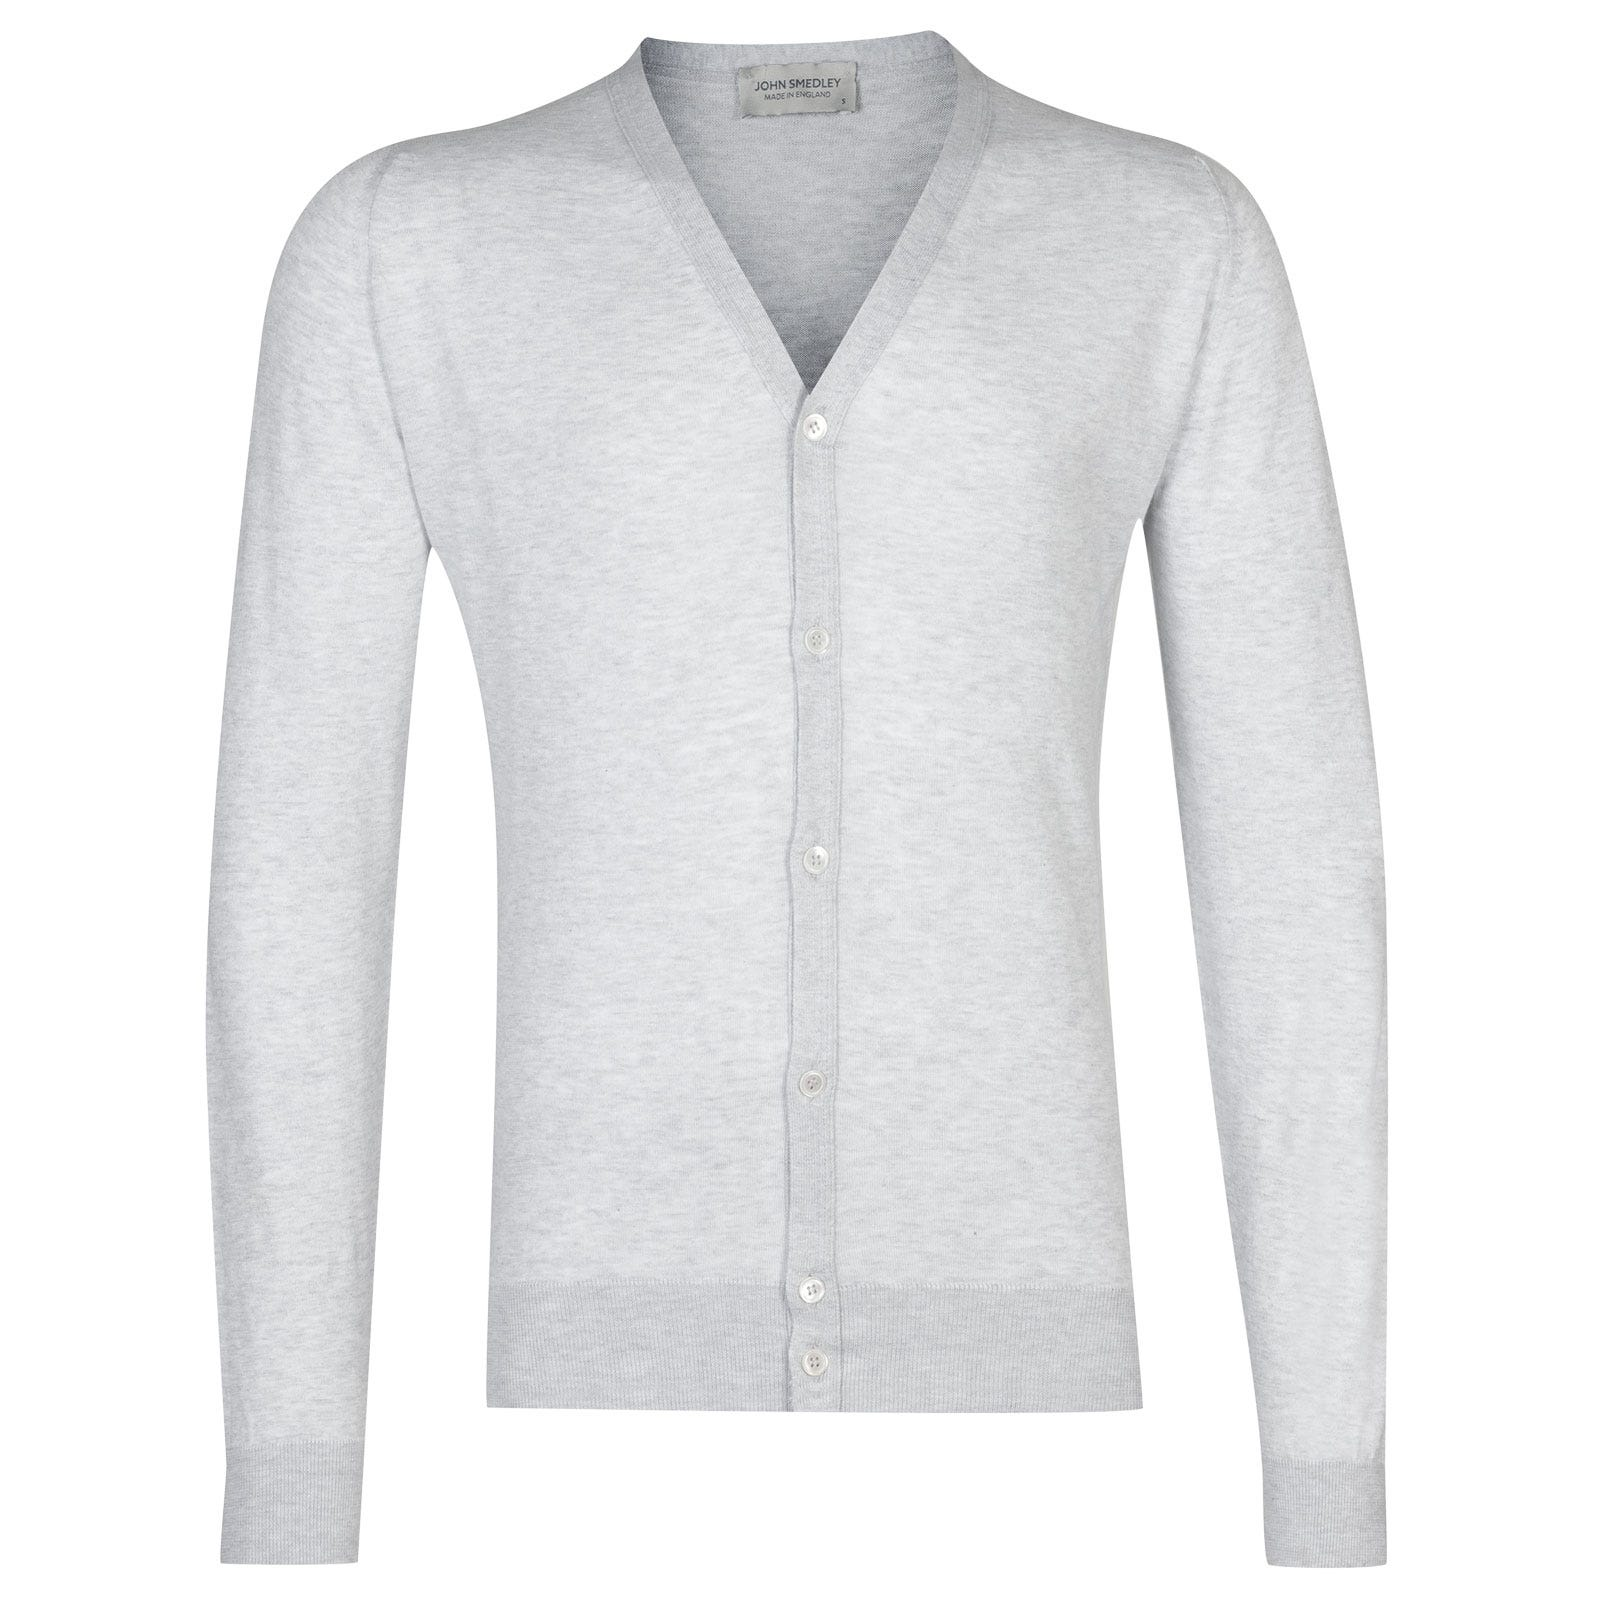 John Smedley whitchurch Sea Island Cotton Cardigan in Feather Grey-M